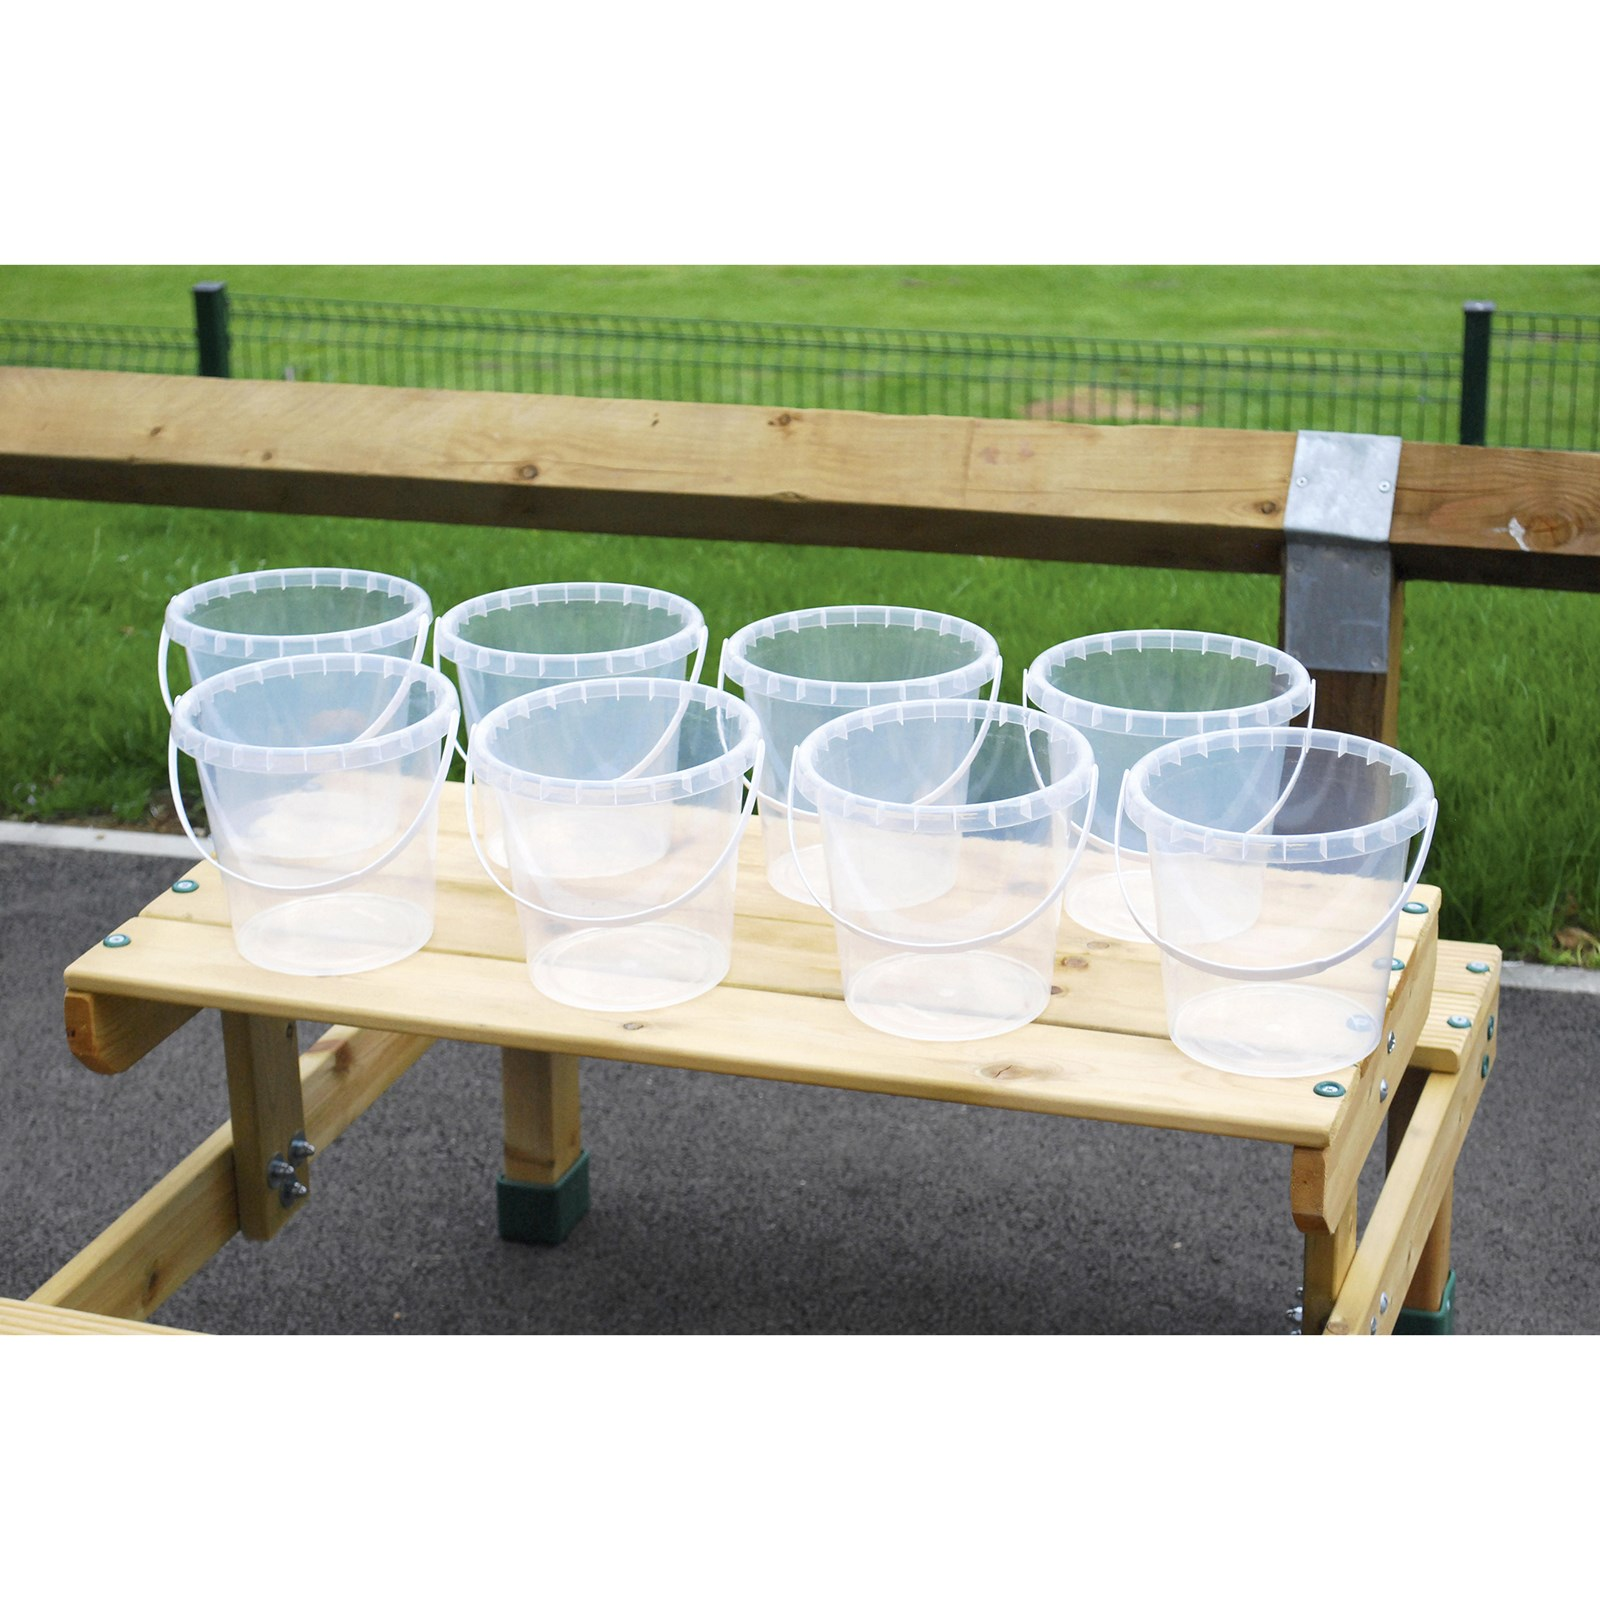 Clear Plastic Buckets